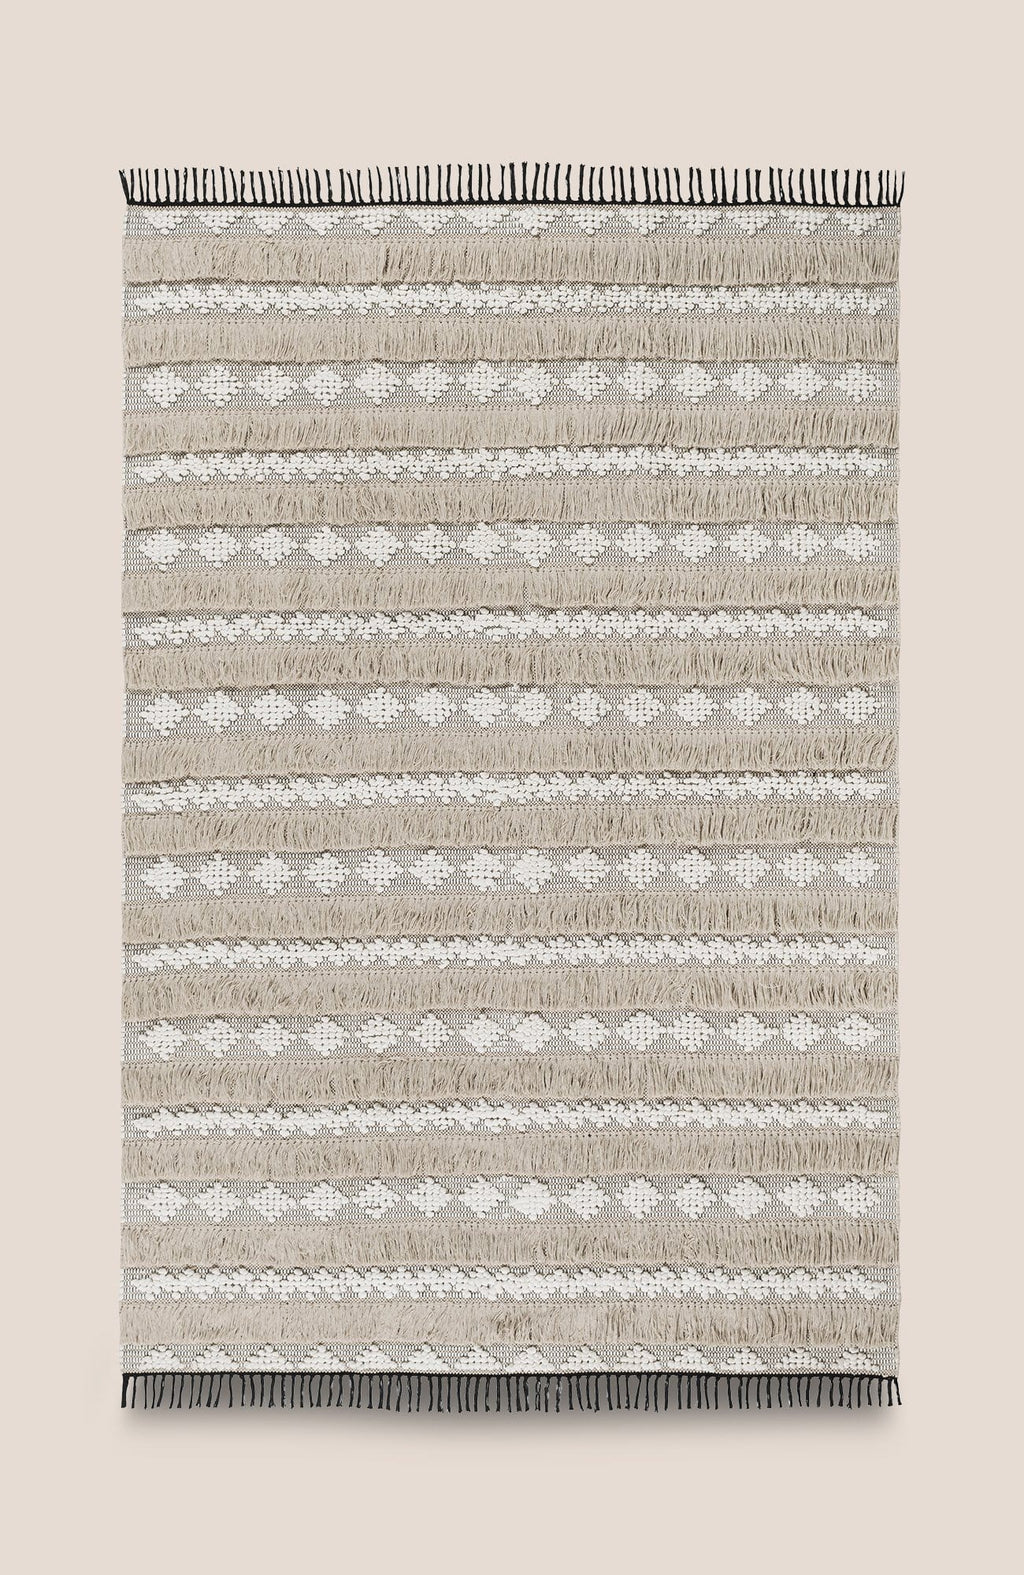 Boho Tassel Rug - Casa 6.5'x9.8' - Home Decor | Shop Baskets, Ceramics, Pillows, Rugs & Wall Hangs online